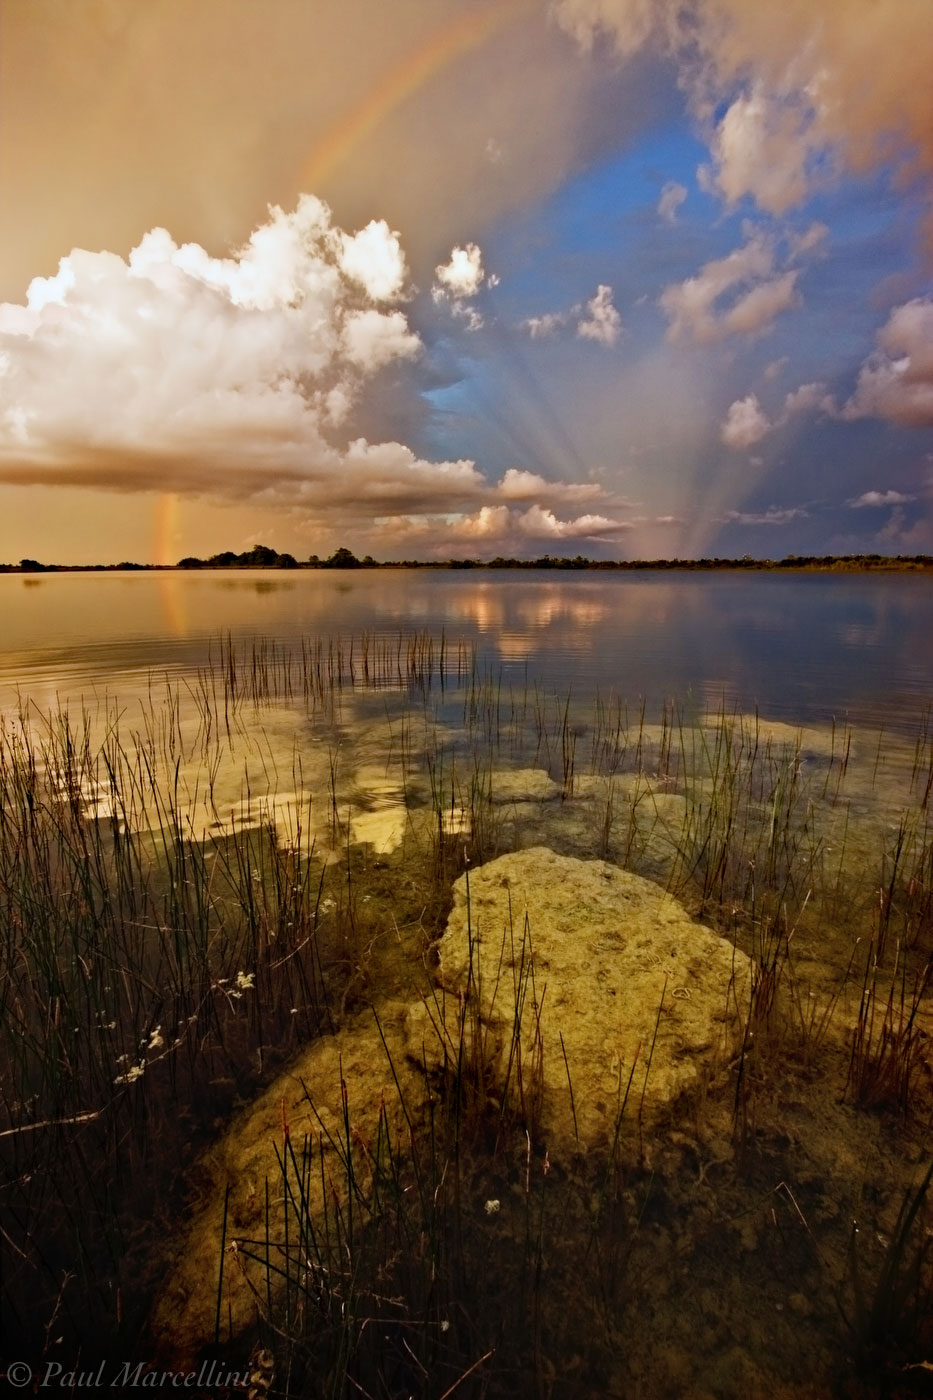 everglades, rainbow, anti-crepuscular rays, lake, reflection, sunset, Florida, nature, photography, florida national parks, photo